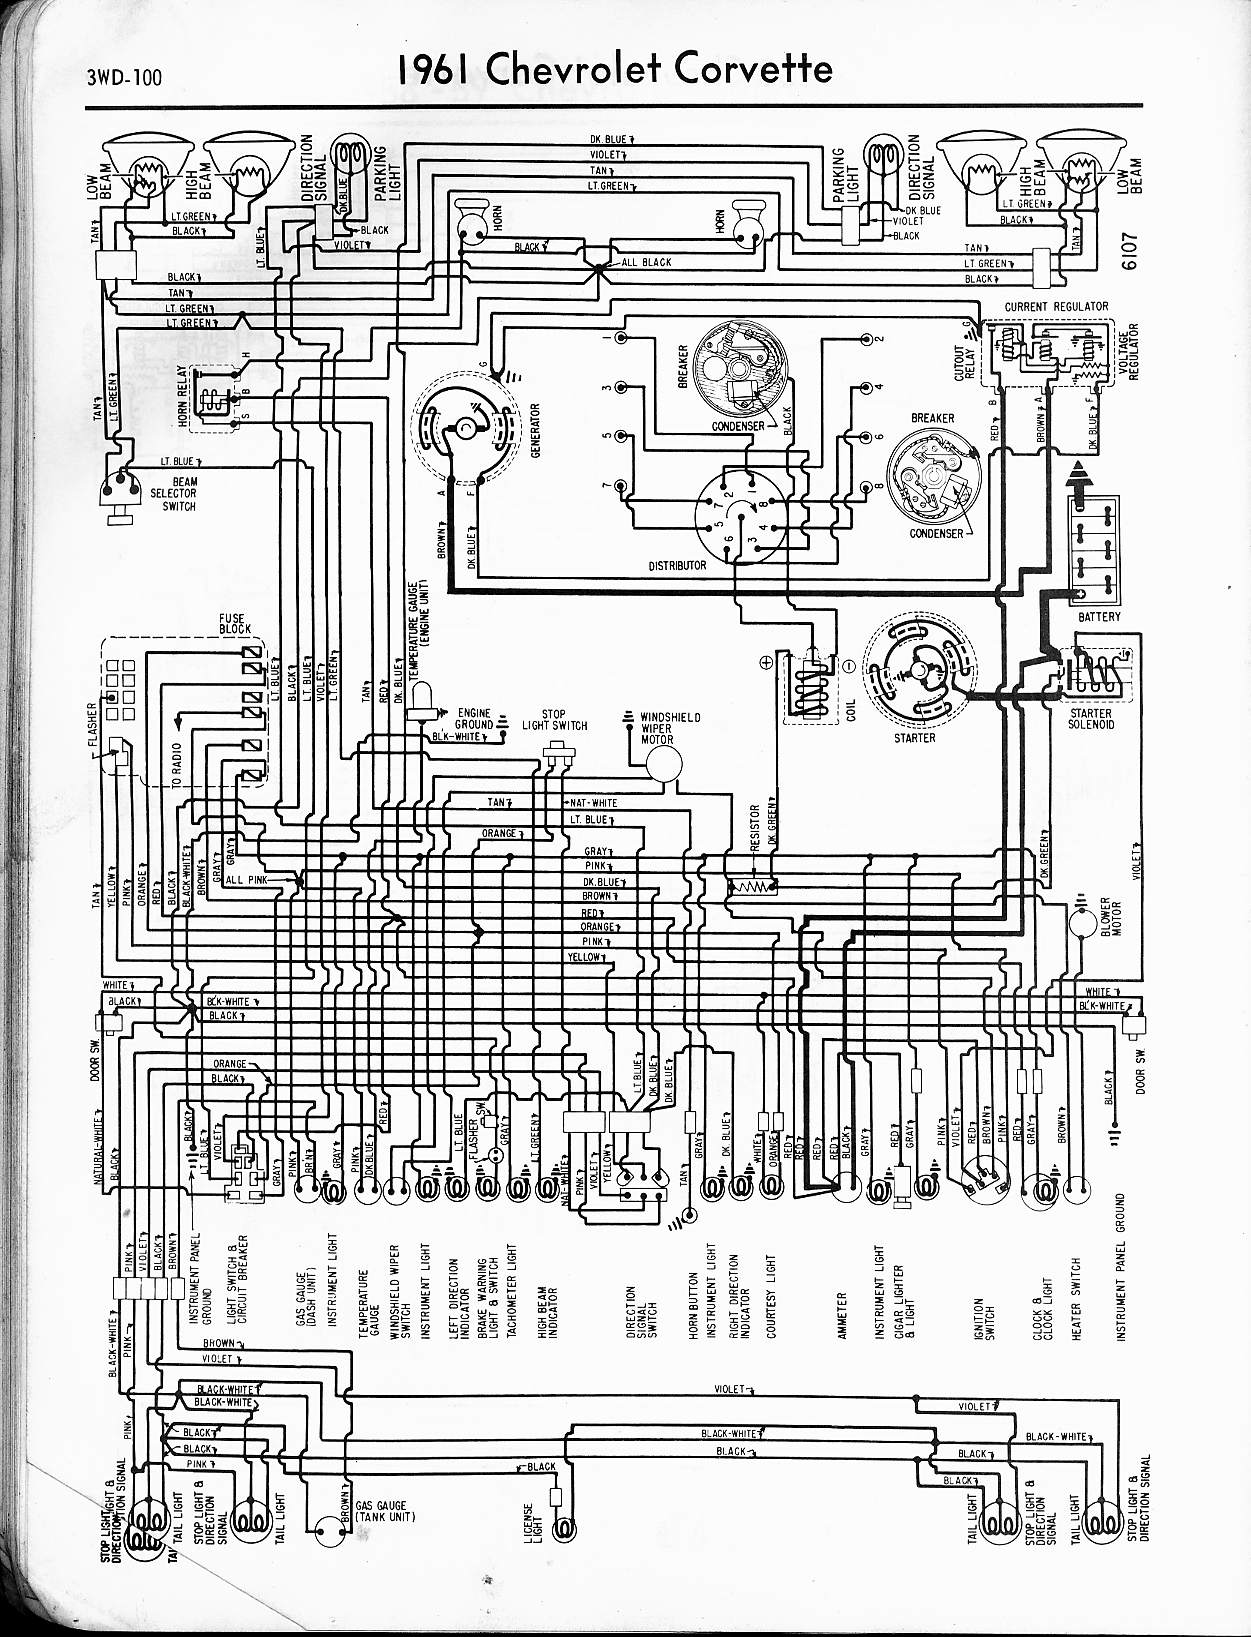 wilder heat oven wiring diagram online circuit wiring diagram u2022 rh electrobuddha co uk